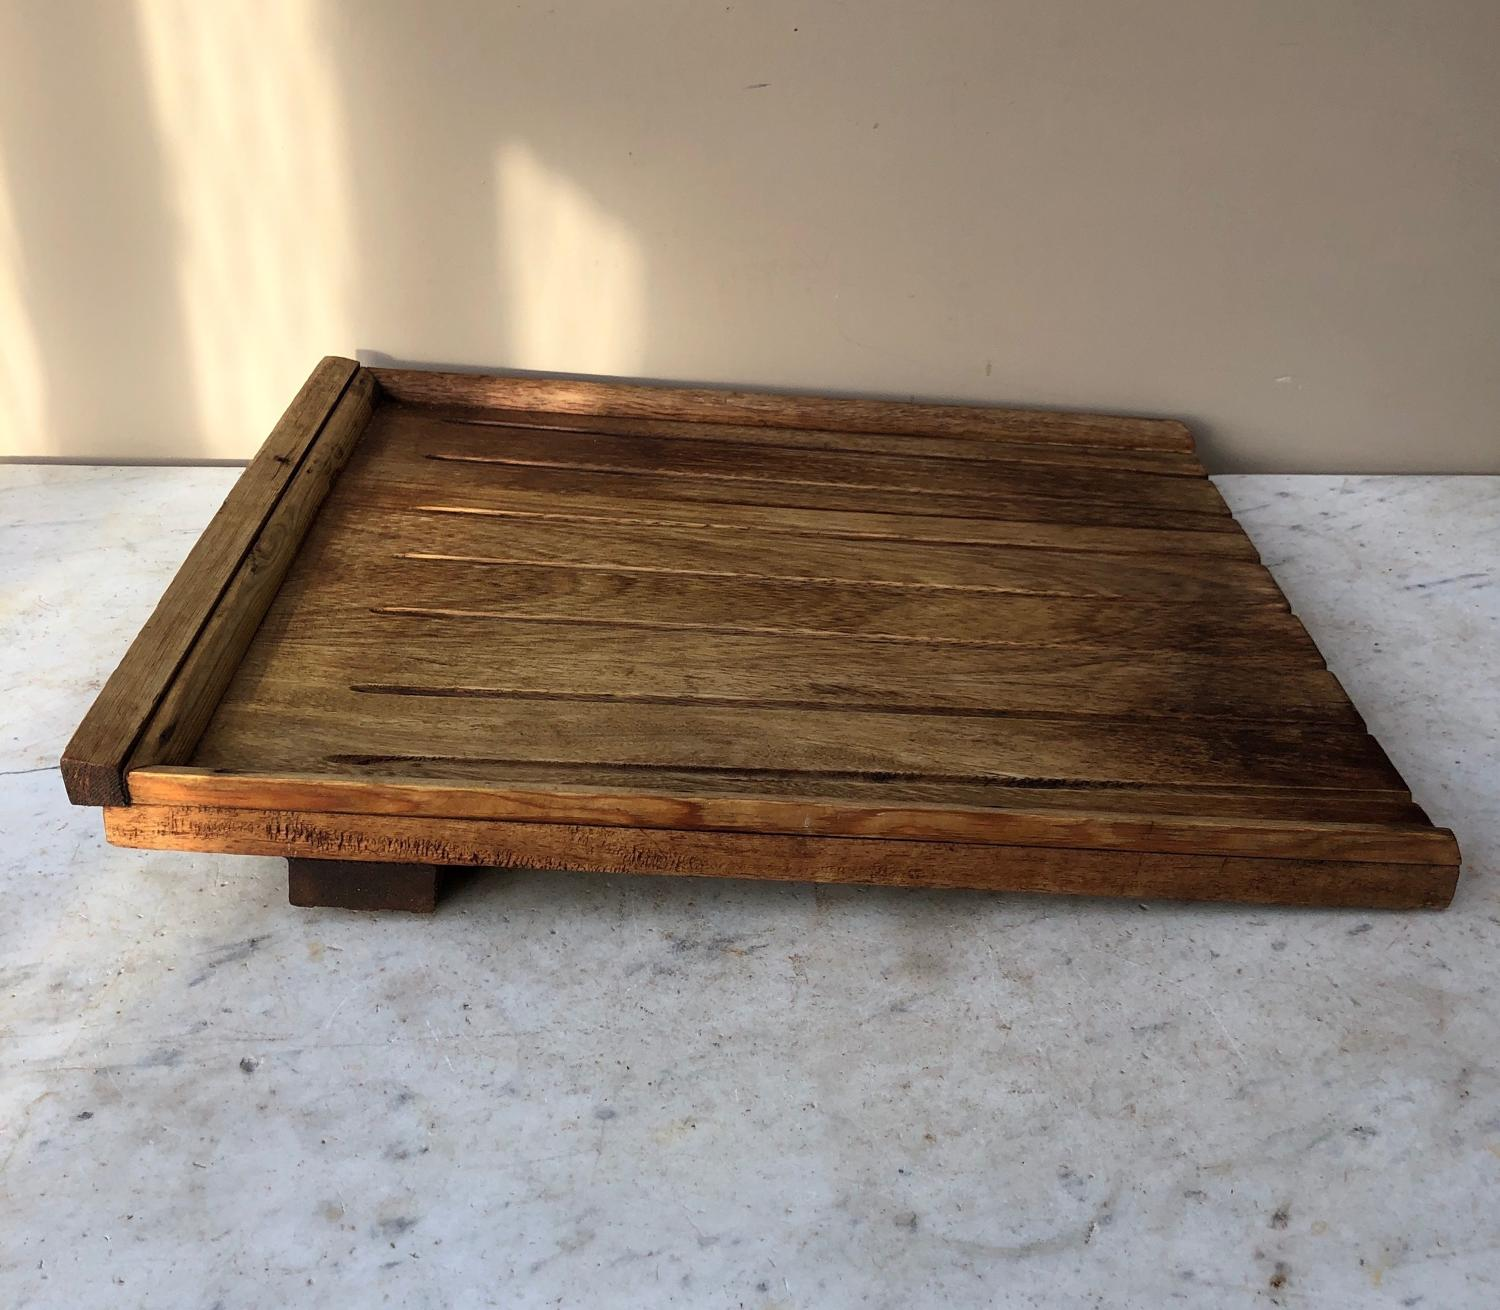 Antique Oak Draining Board - Ready to Use